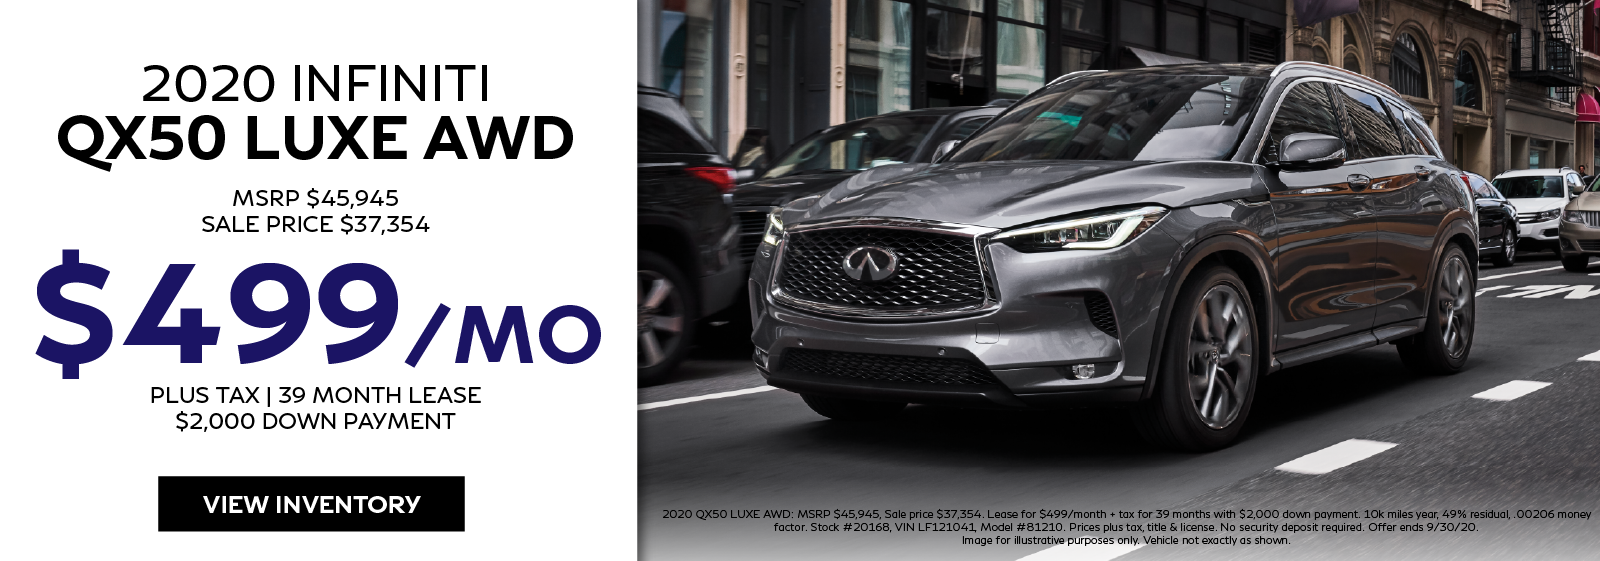 Lease the 2020 QX50 LUXE AWD for $487 per month for 39 months. Click to view inventory.